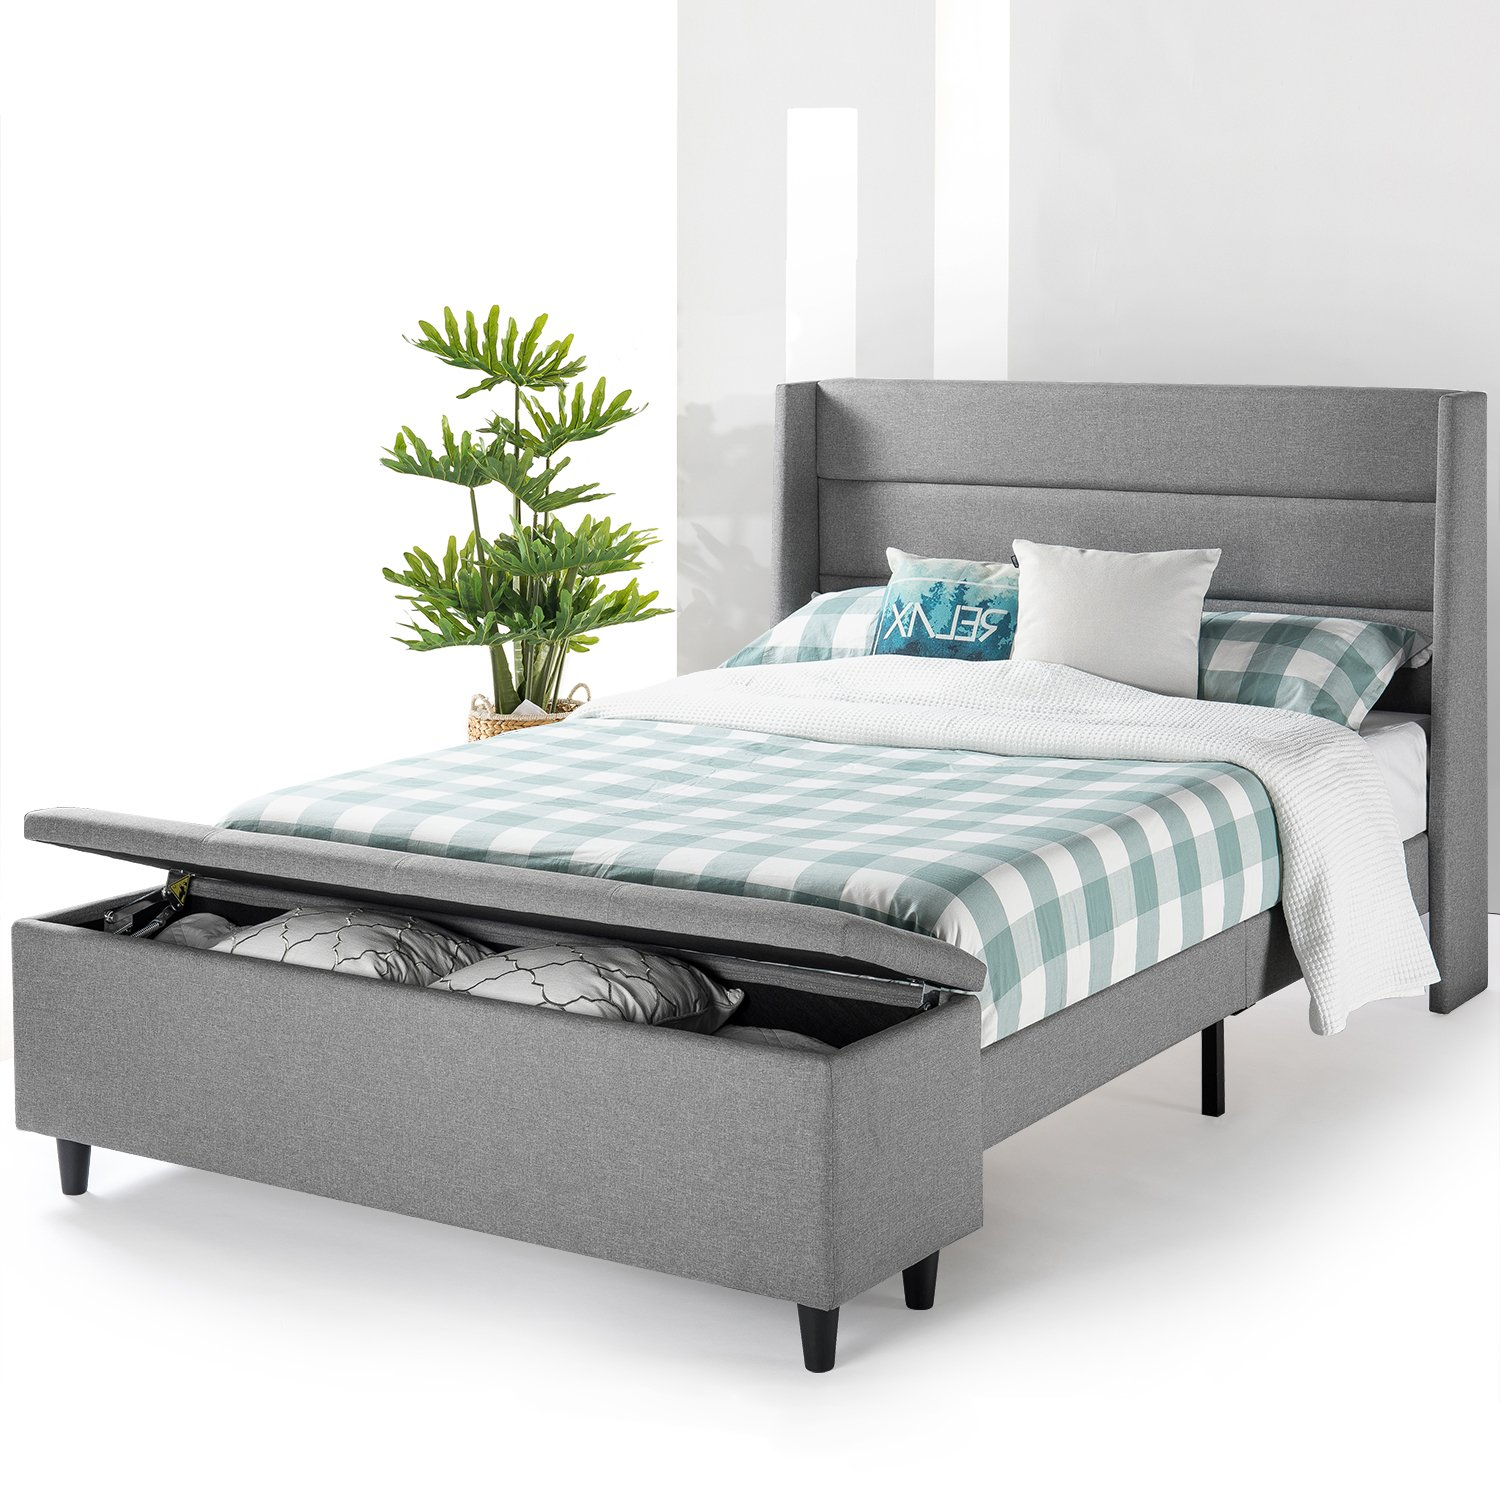 Amazon Com Mellow Platform Bed With Headboard And Bedside Storage Ottoman Queen Gray